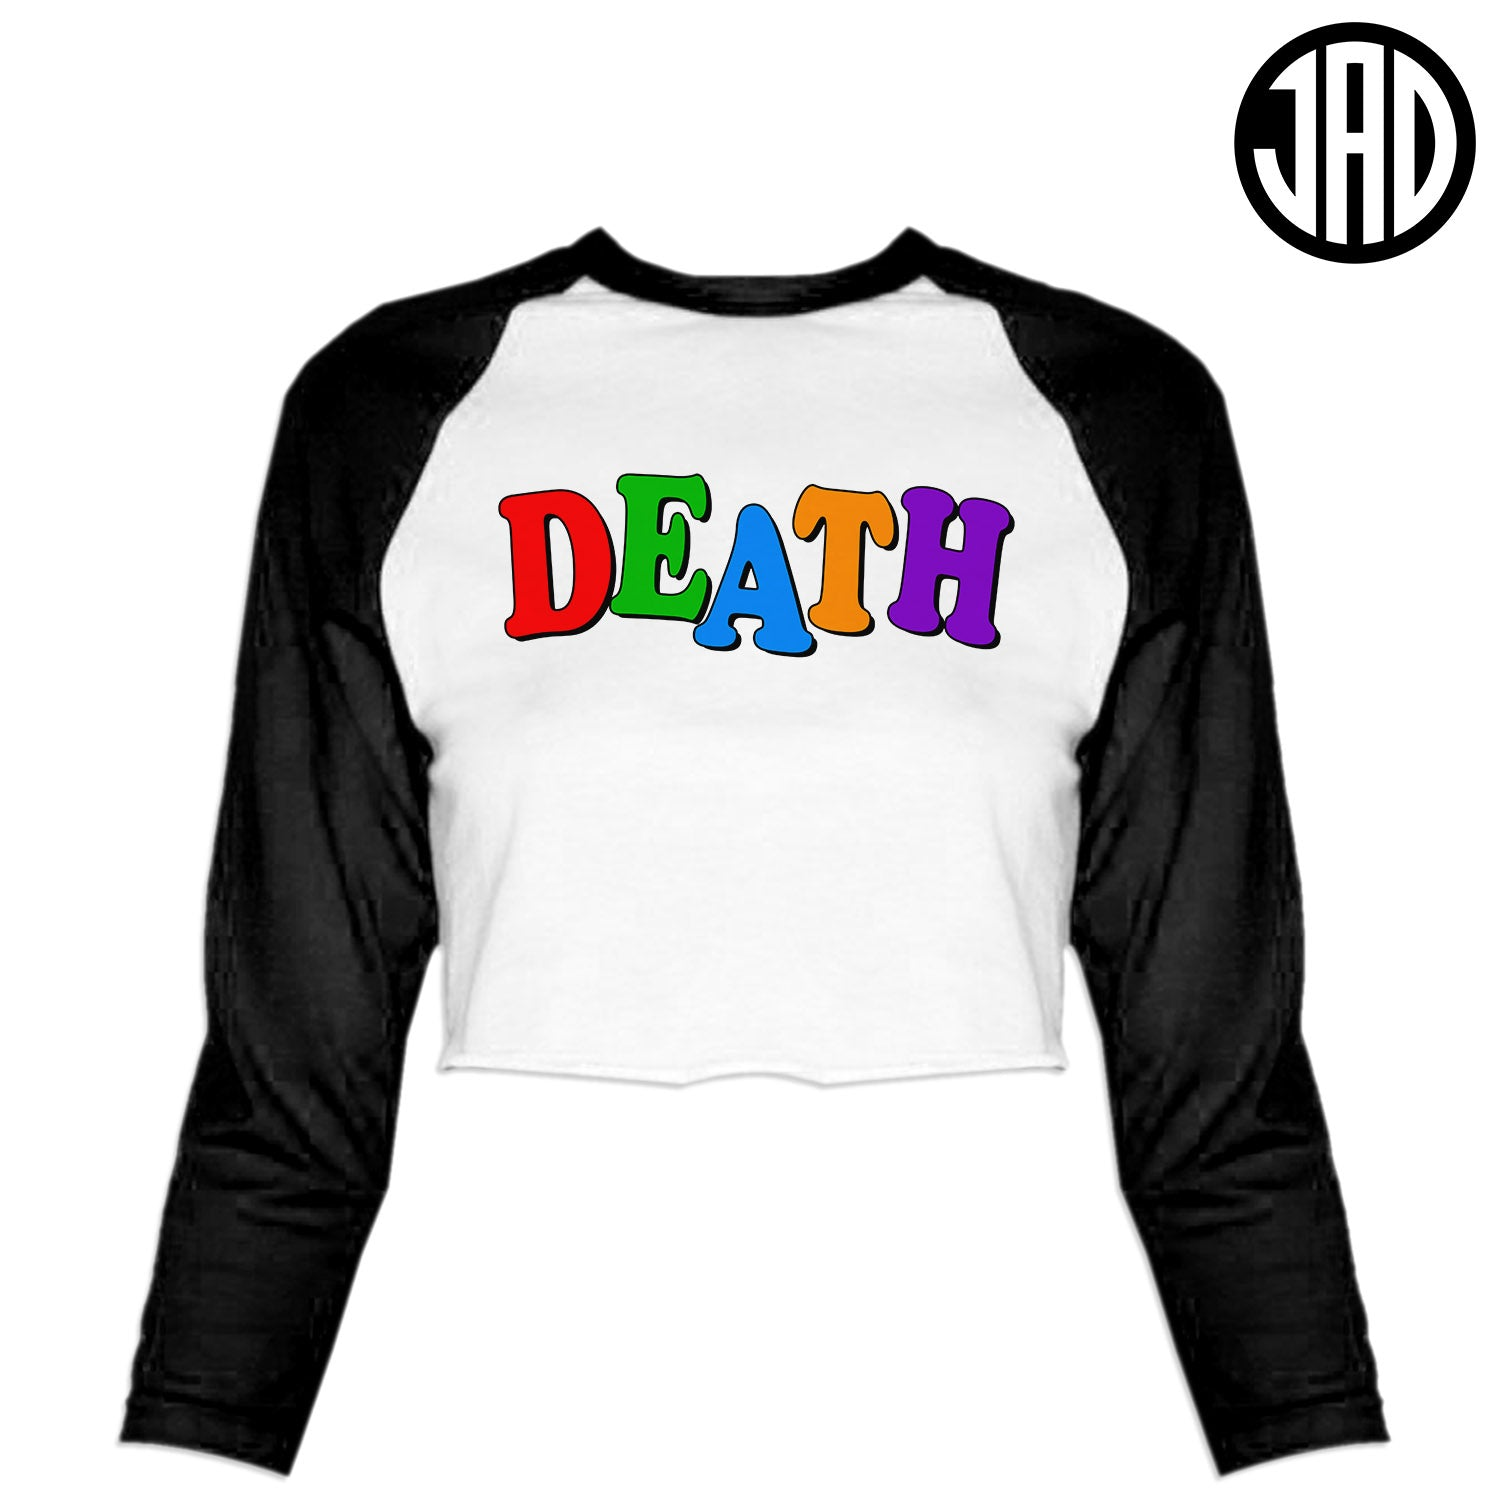 Death School - Women's Cropped Baseball Tee